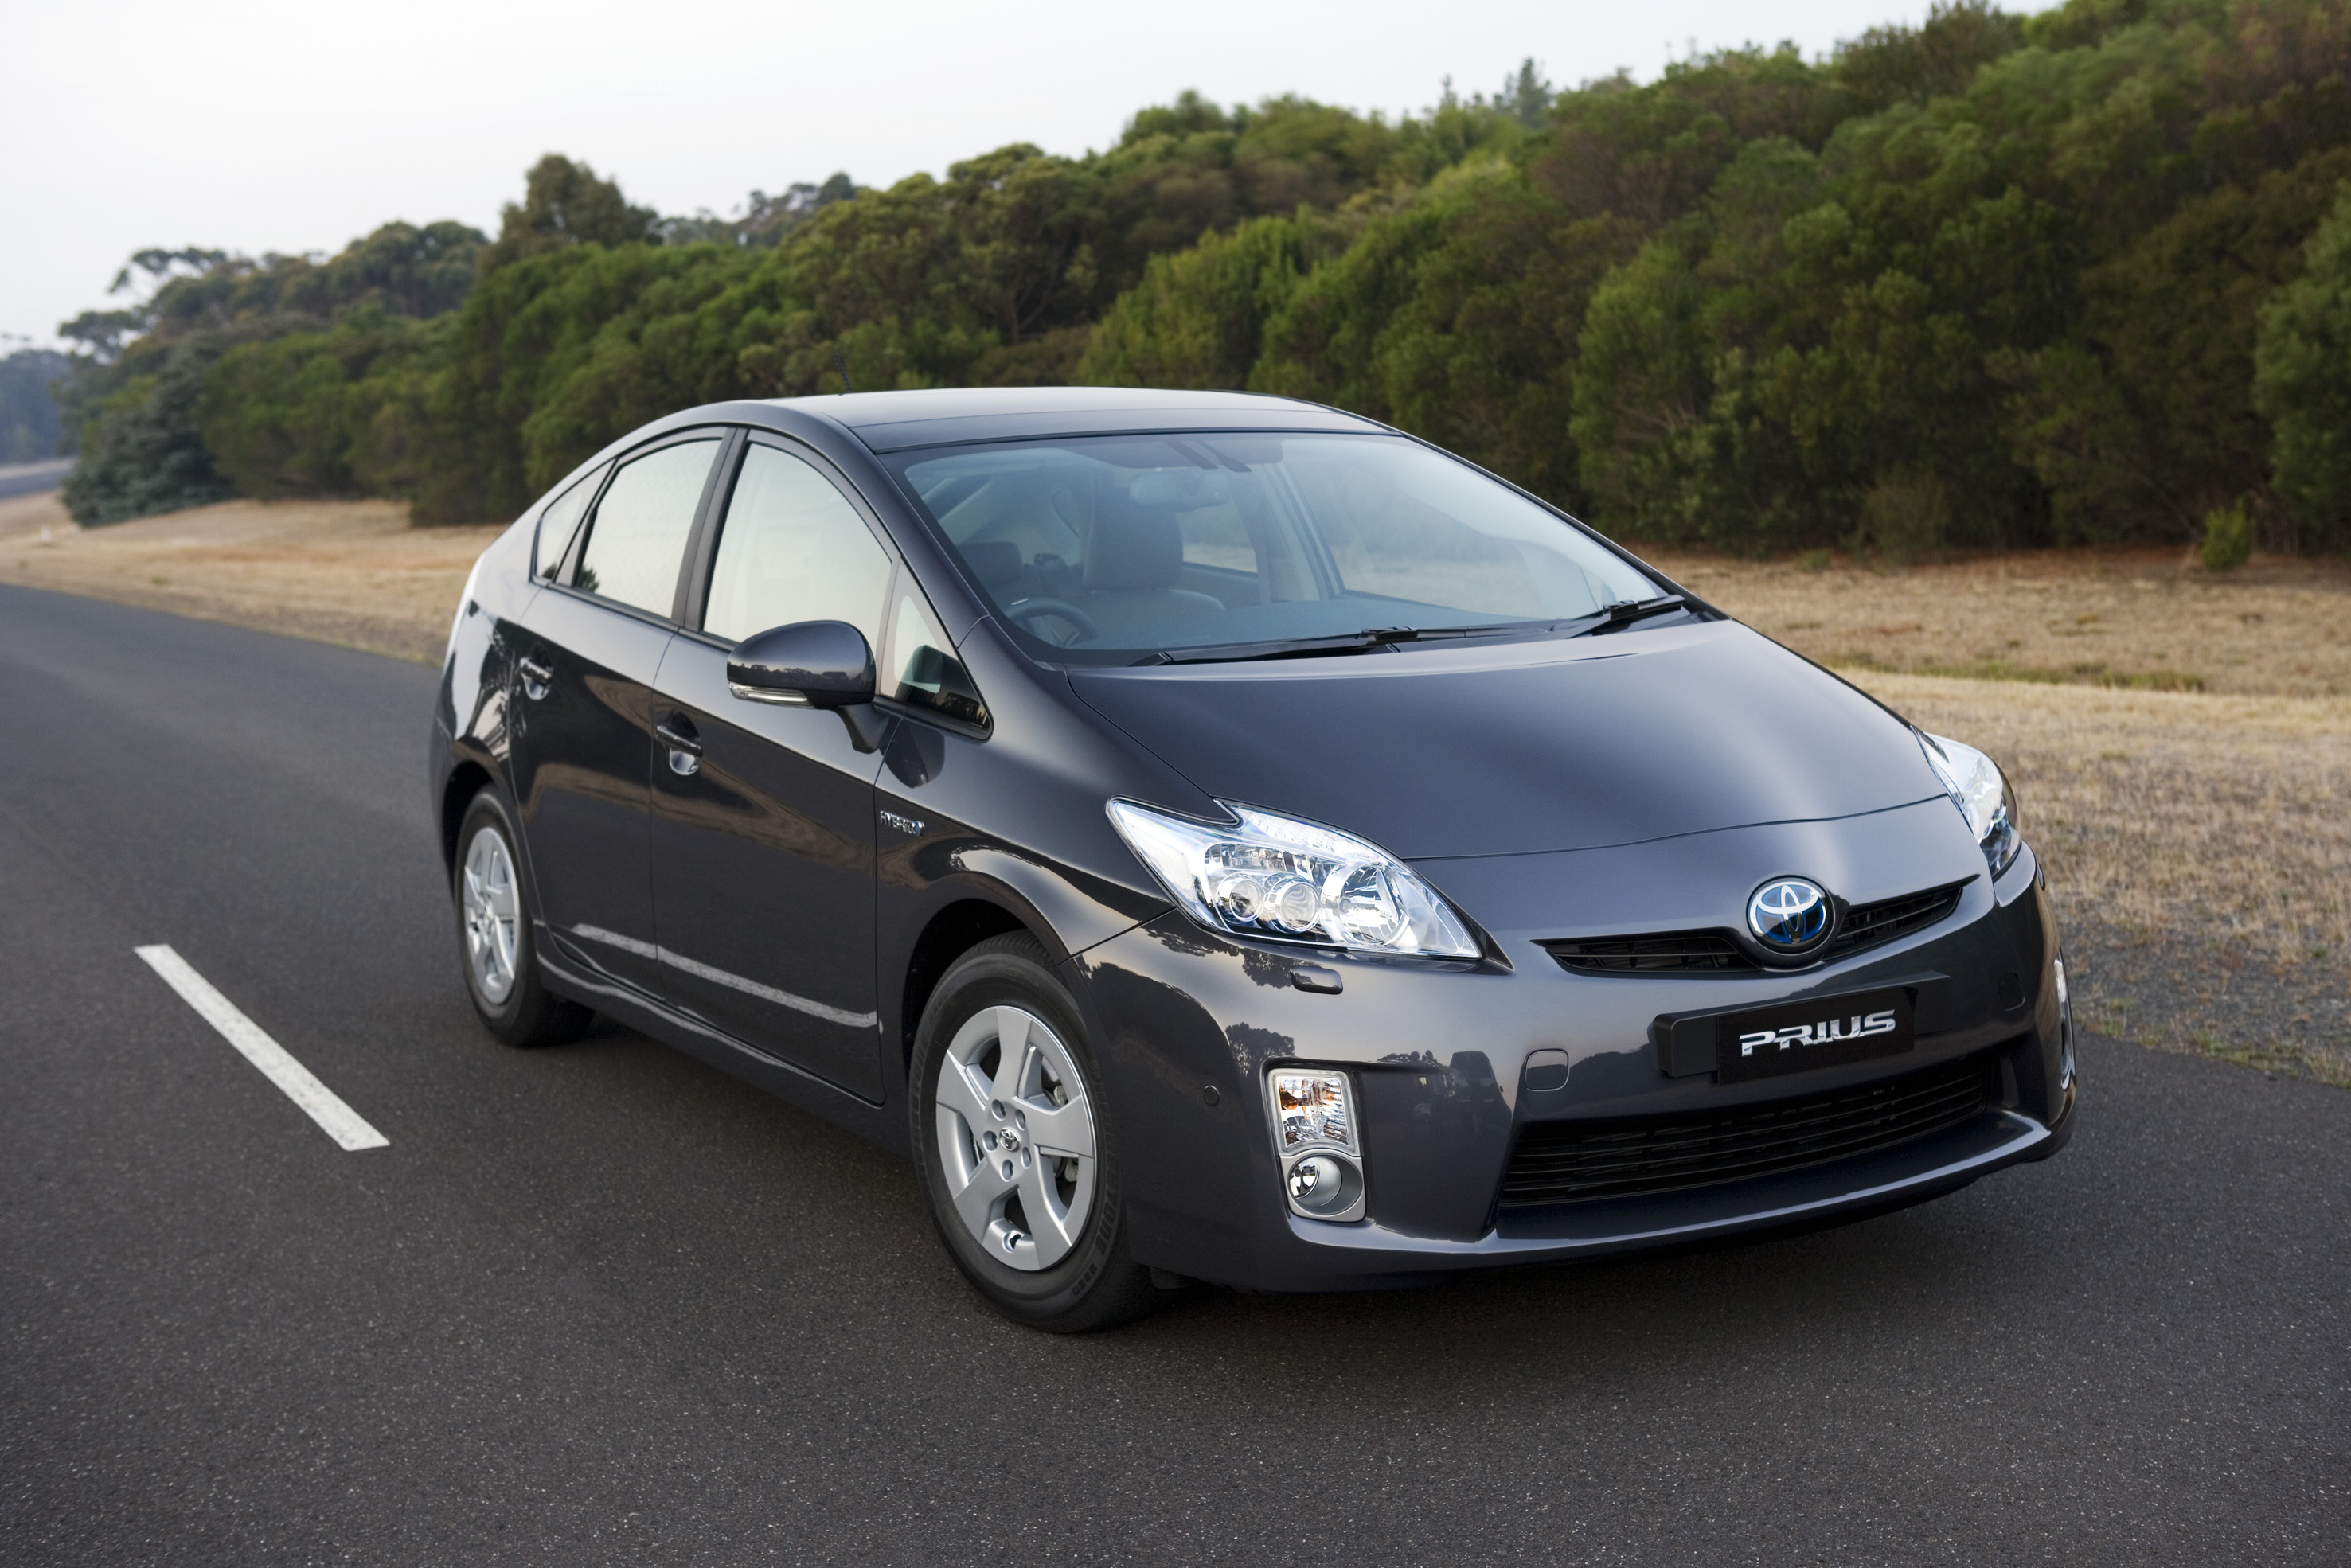 toyota recalls 340 000 prius hybrid cars for faulty brakes. Black Bedroom Furniture Sets. Home Design Ideas